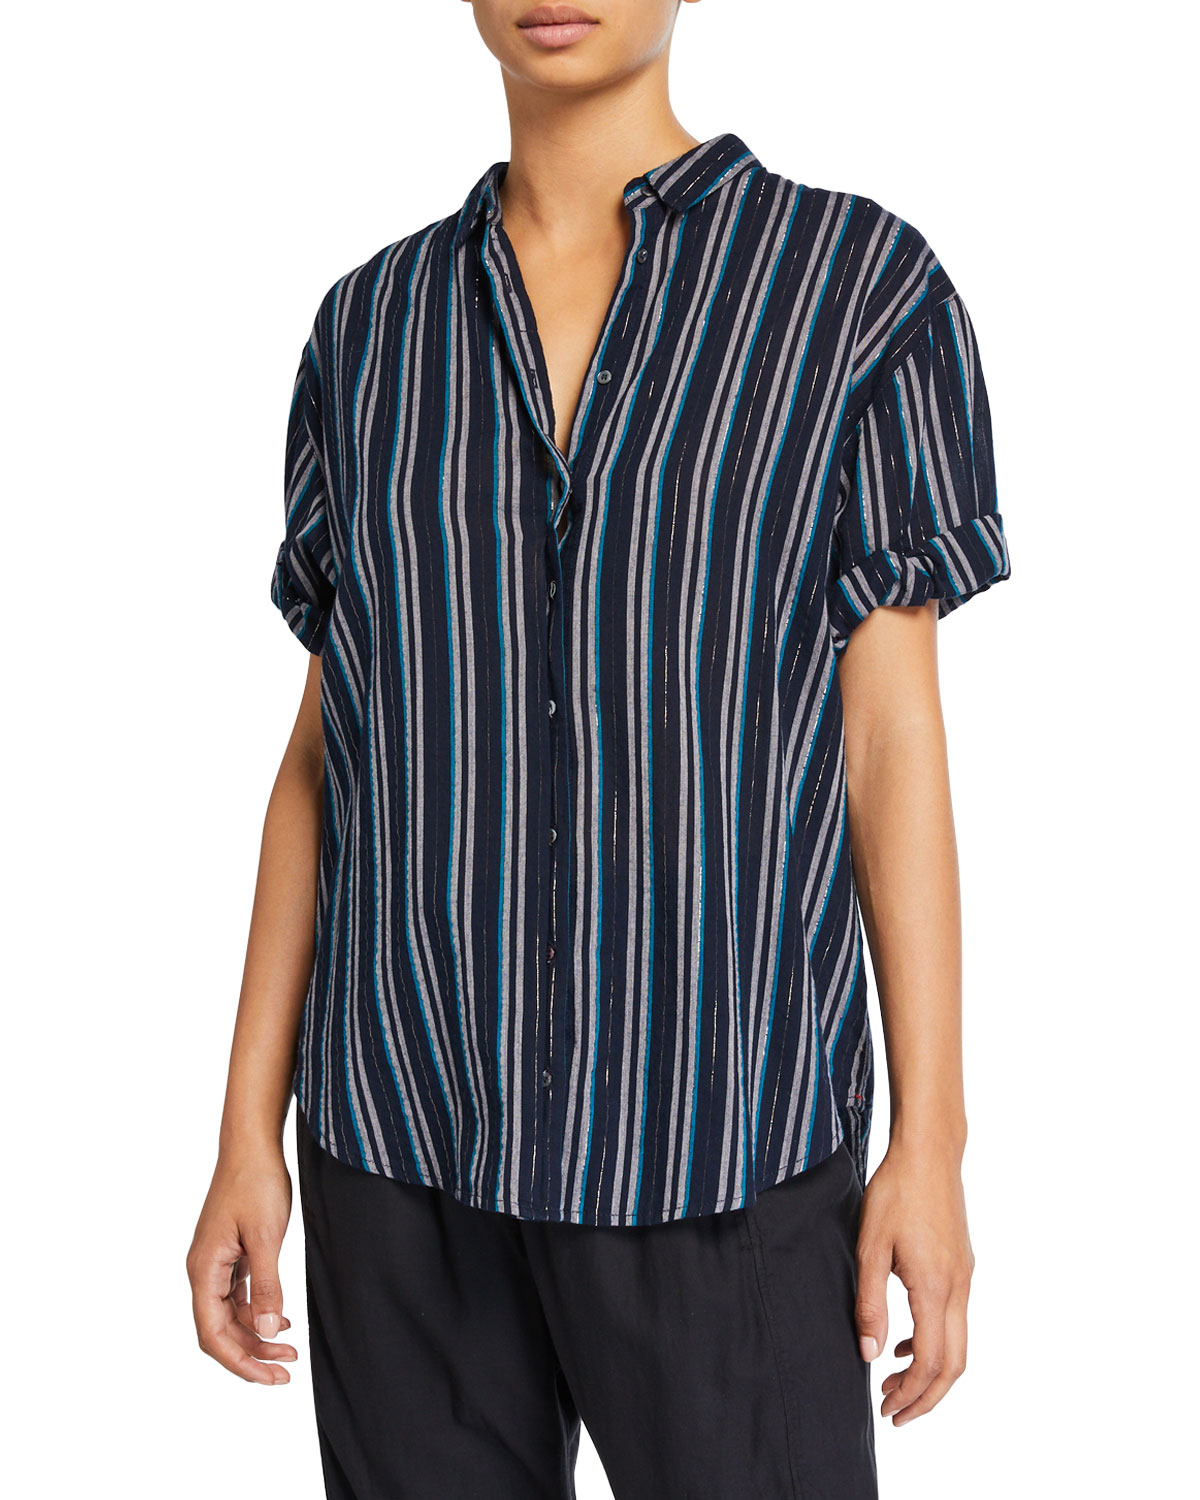 Xirena T-shirts CHANNING STRIPED POPLIN SHIRT